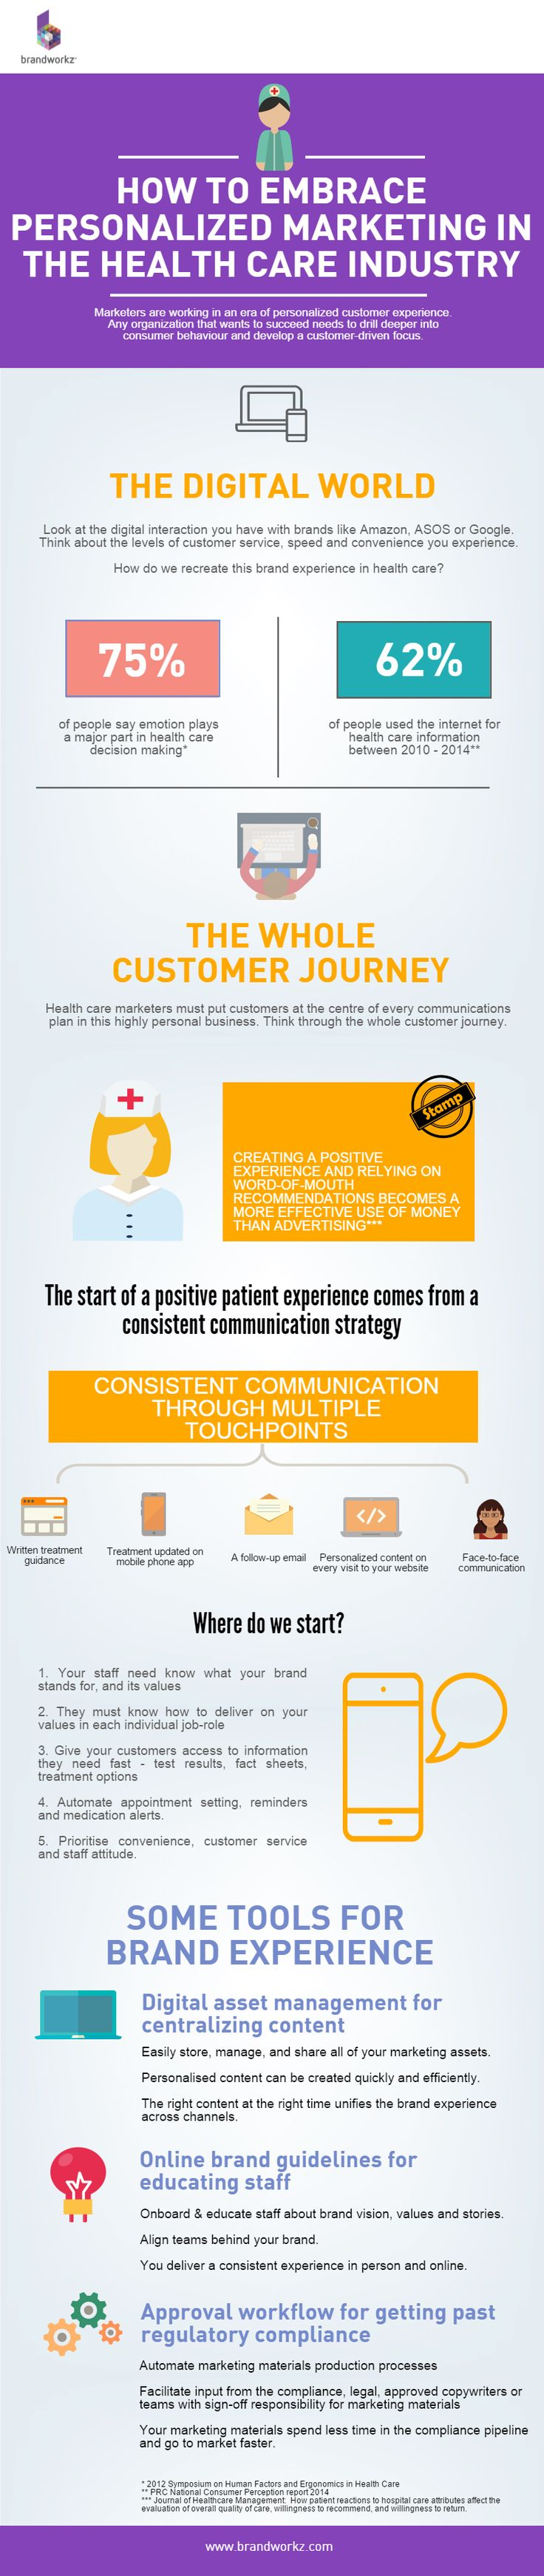 Infographic: How to personalise patient marketing #infographics #epatient